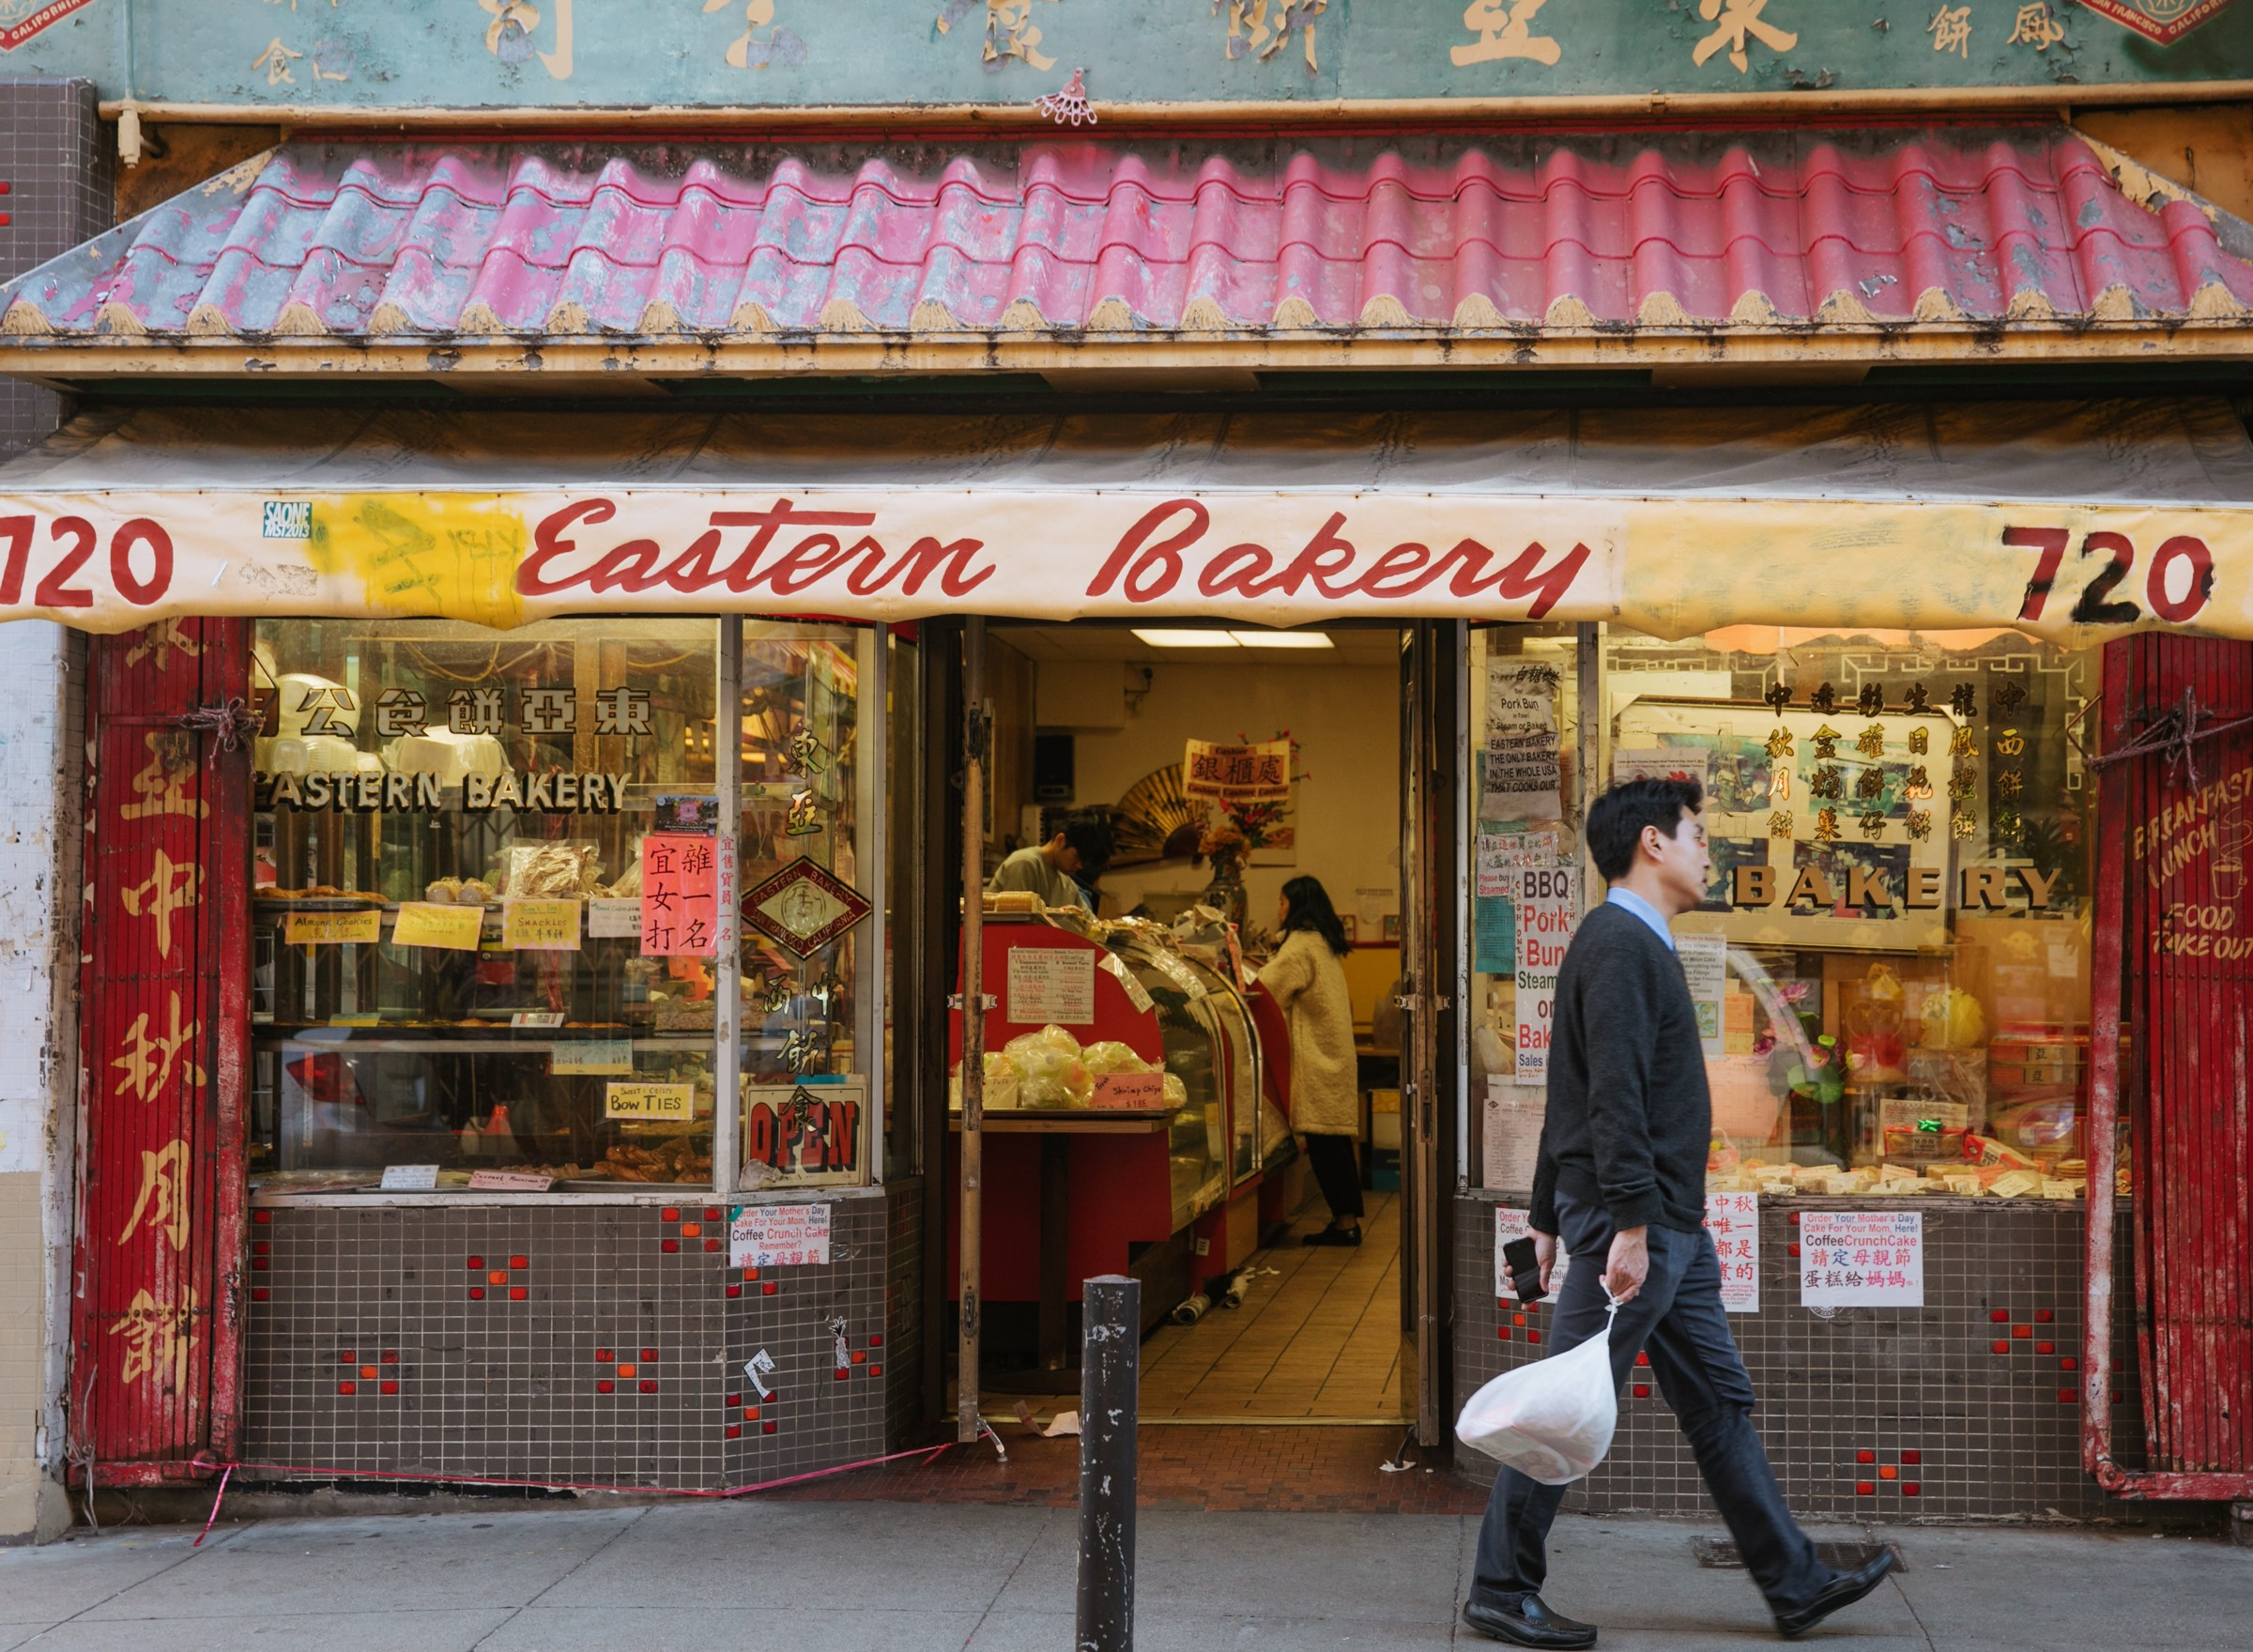 Click To Enlarge Eastern Bakery Is One Of Four Clic San Francisco Chinatown Restaurants Highlighted In The Exhibit